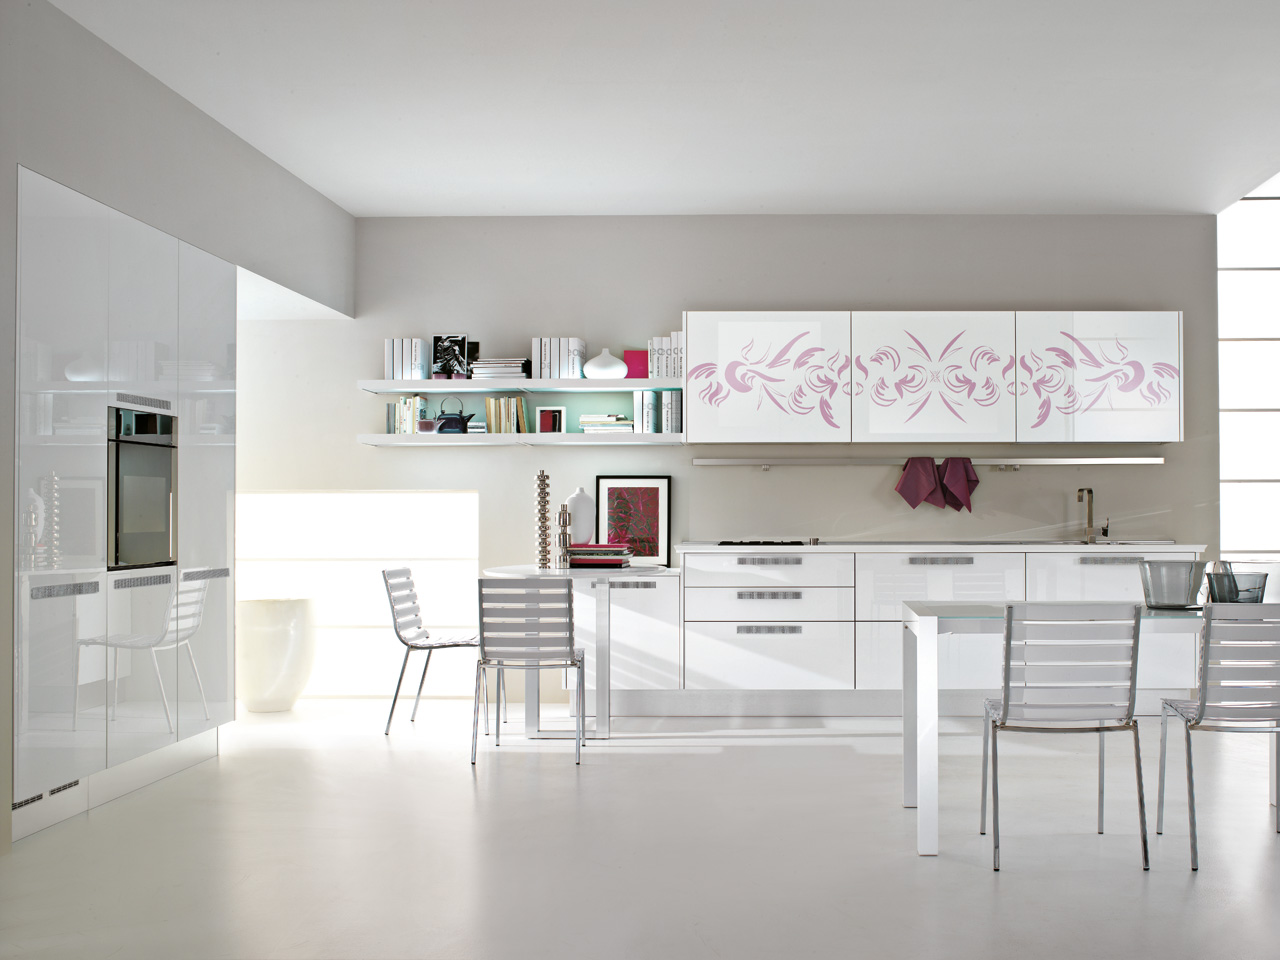 Lussora Kitchen Studio | nilde23